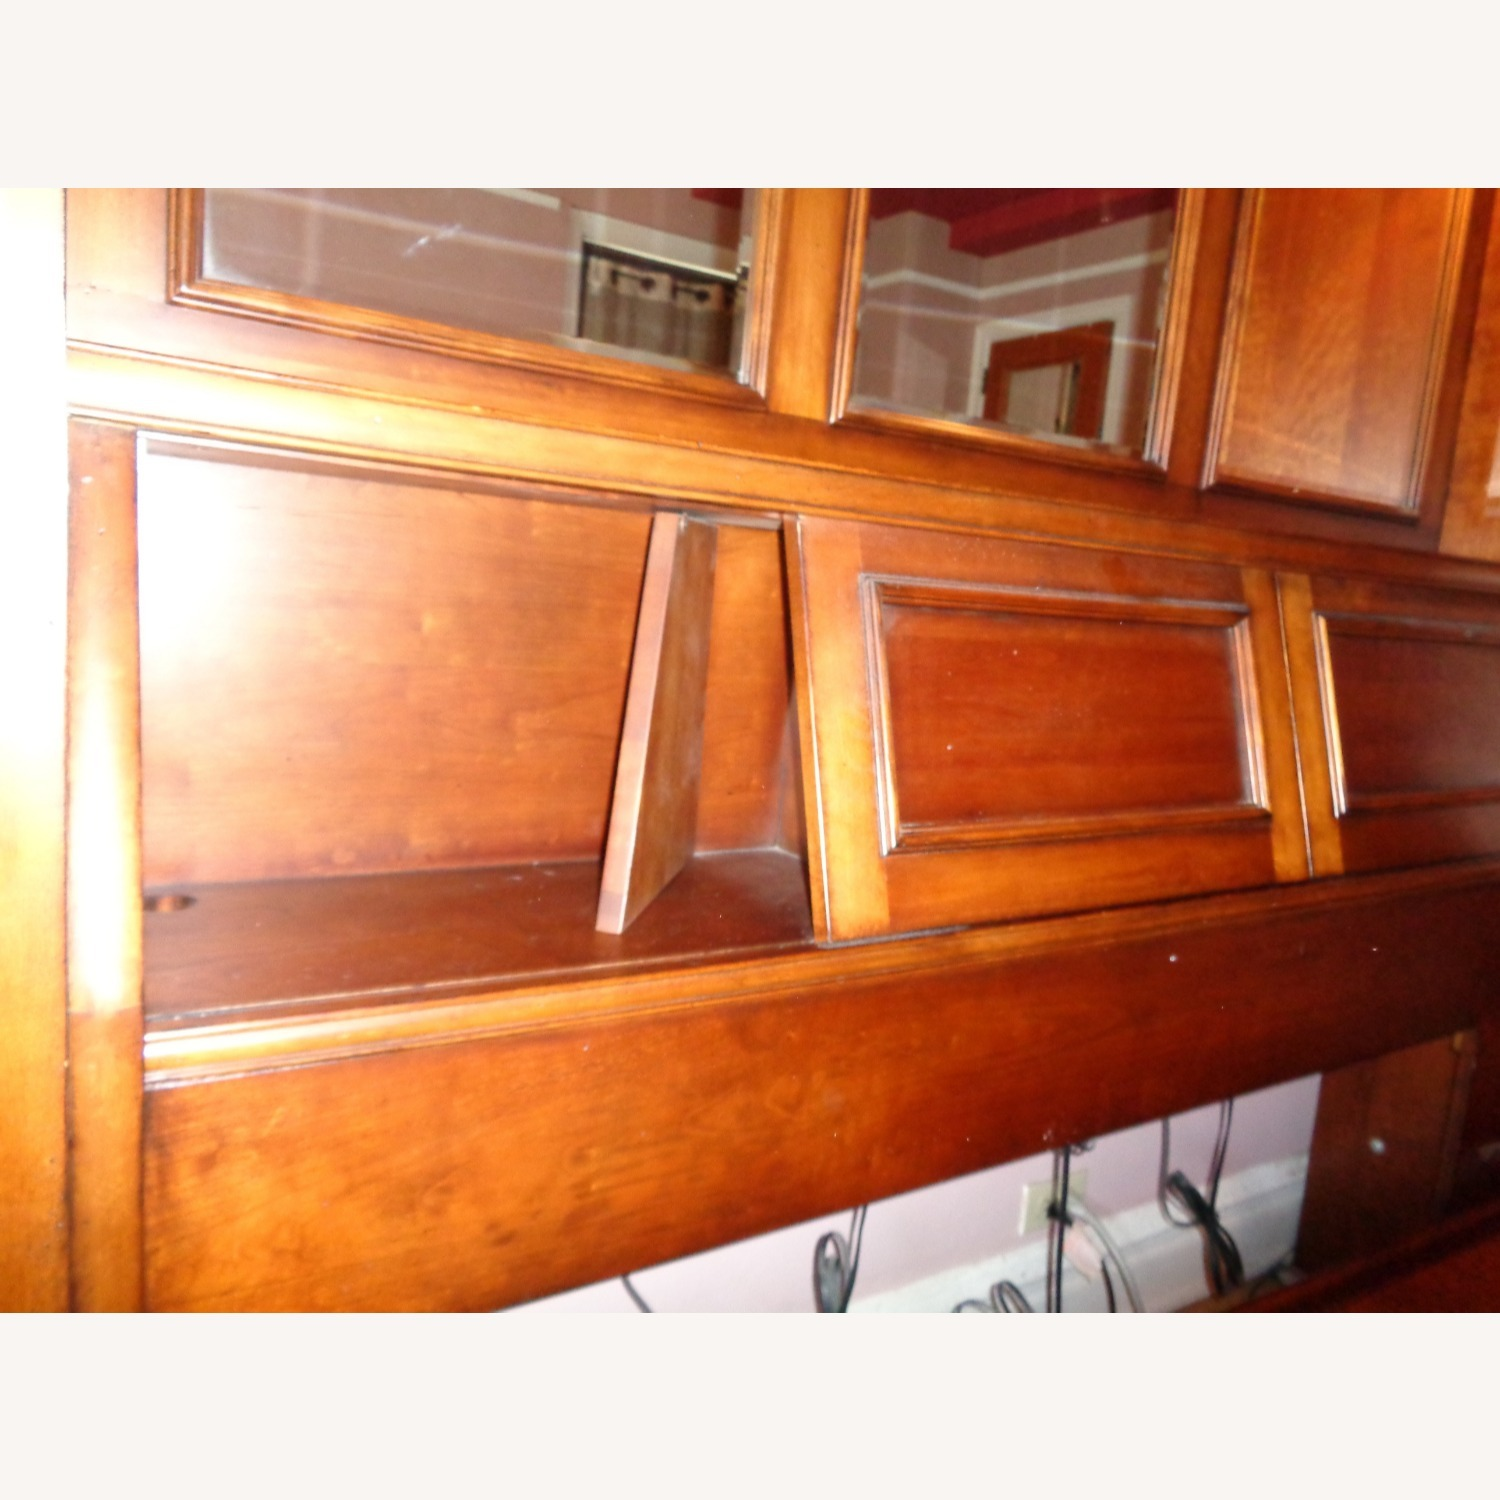 Storage Queen Bed w/ 2 Armoires - image-11